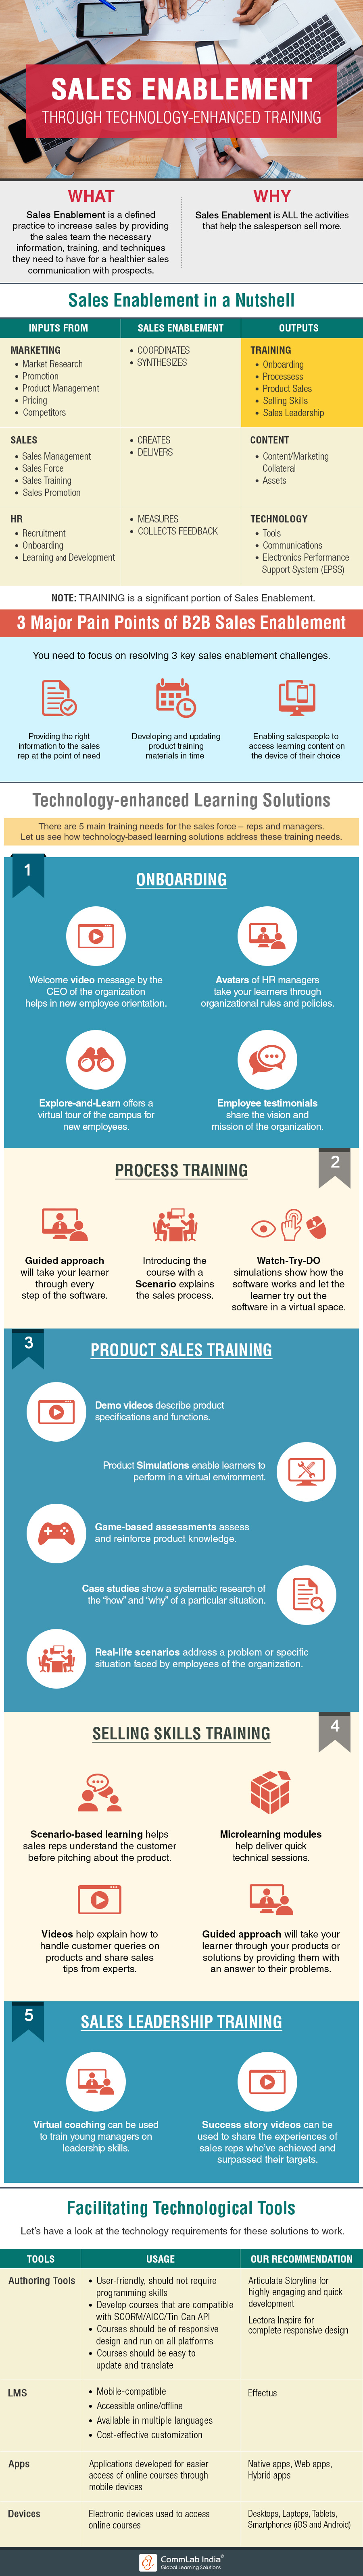 Sales Enablement through Technology-Enhanced Training[Infographic]